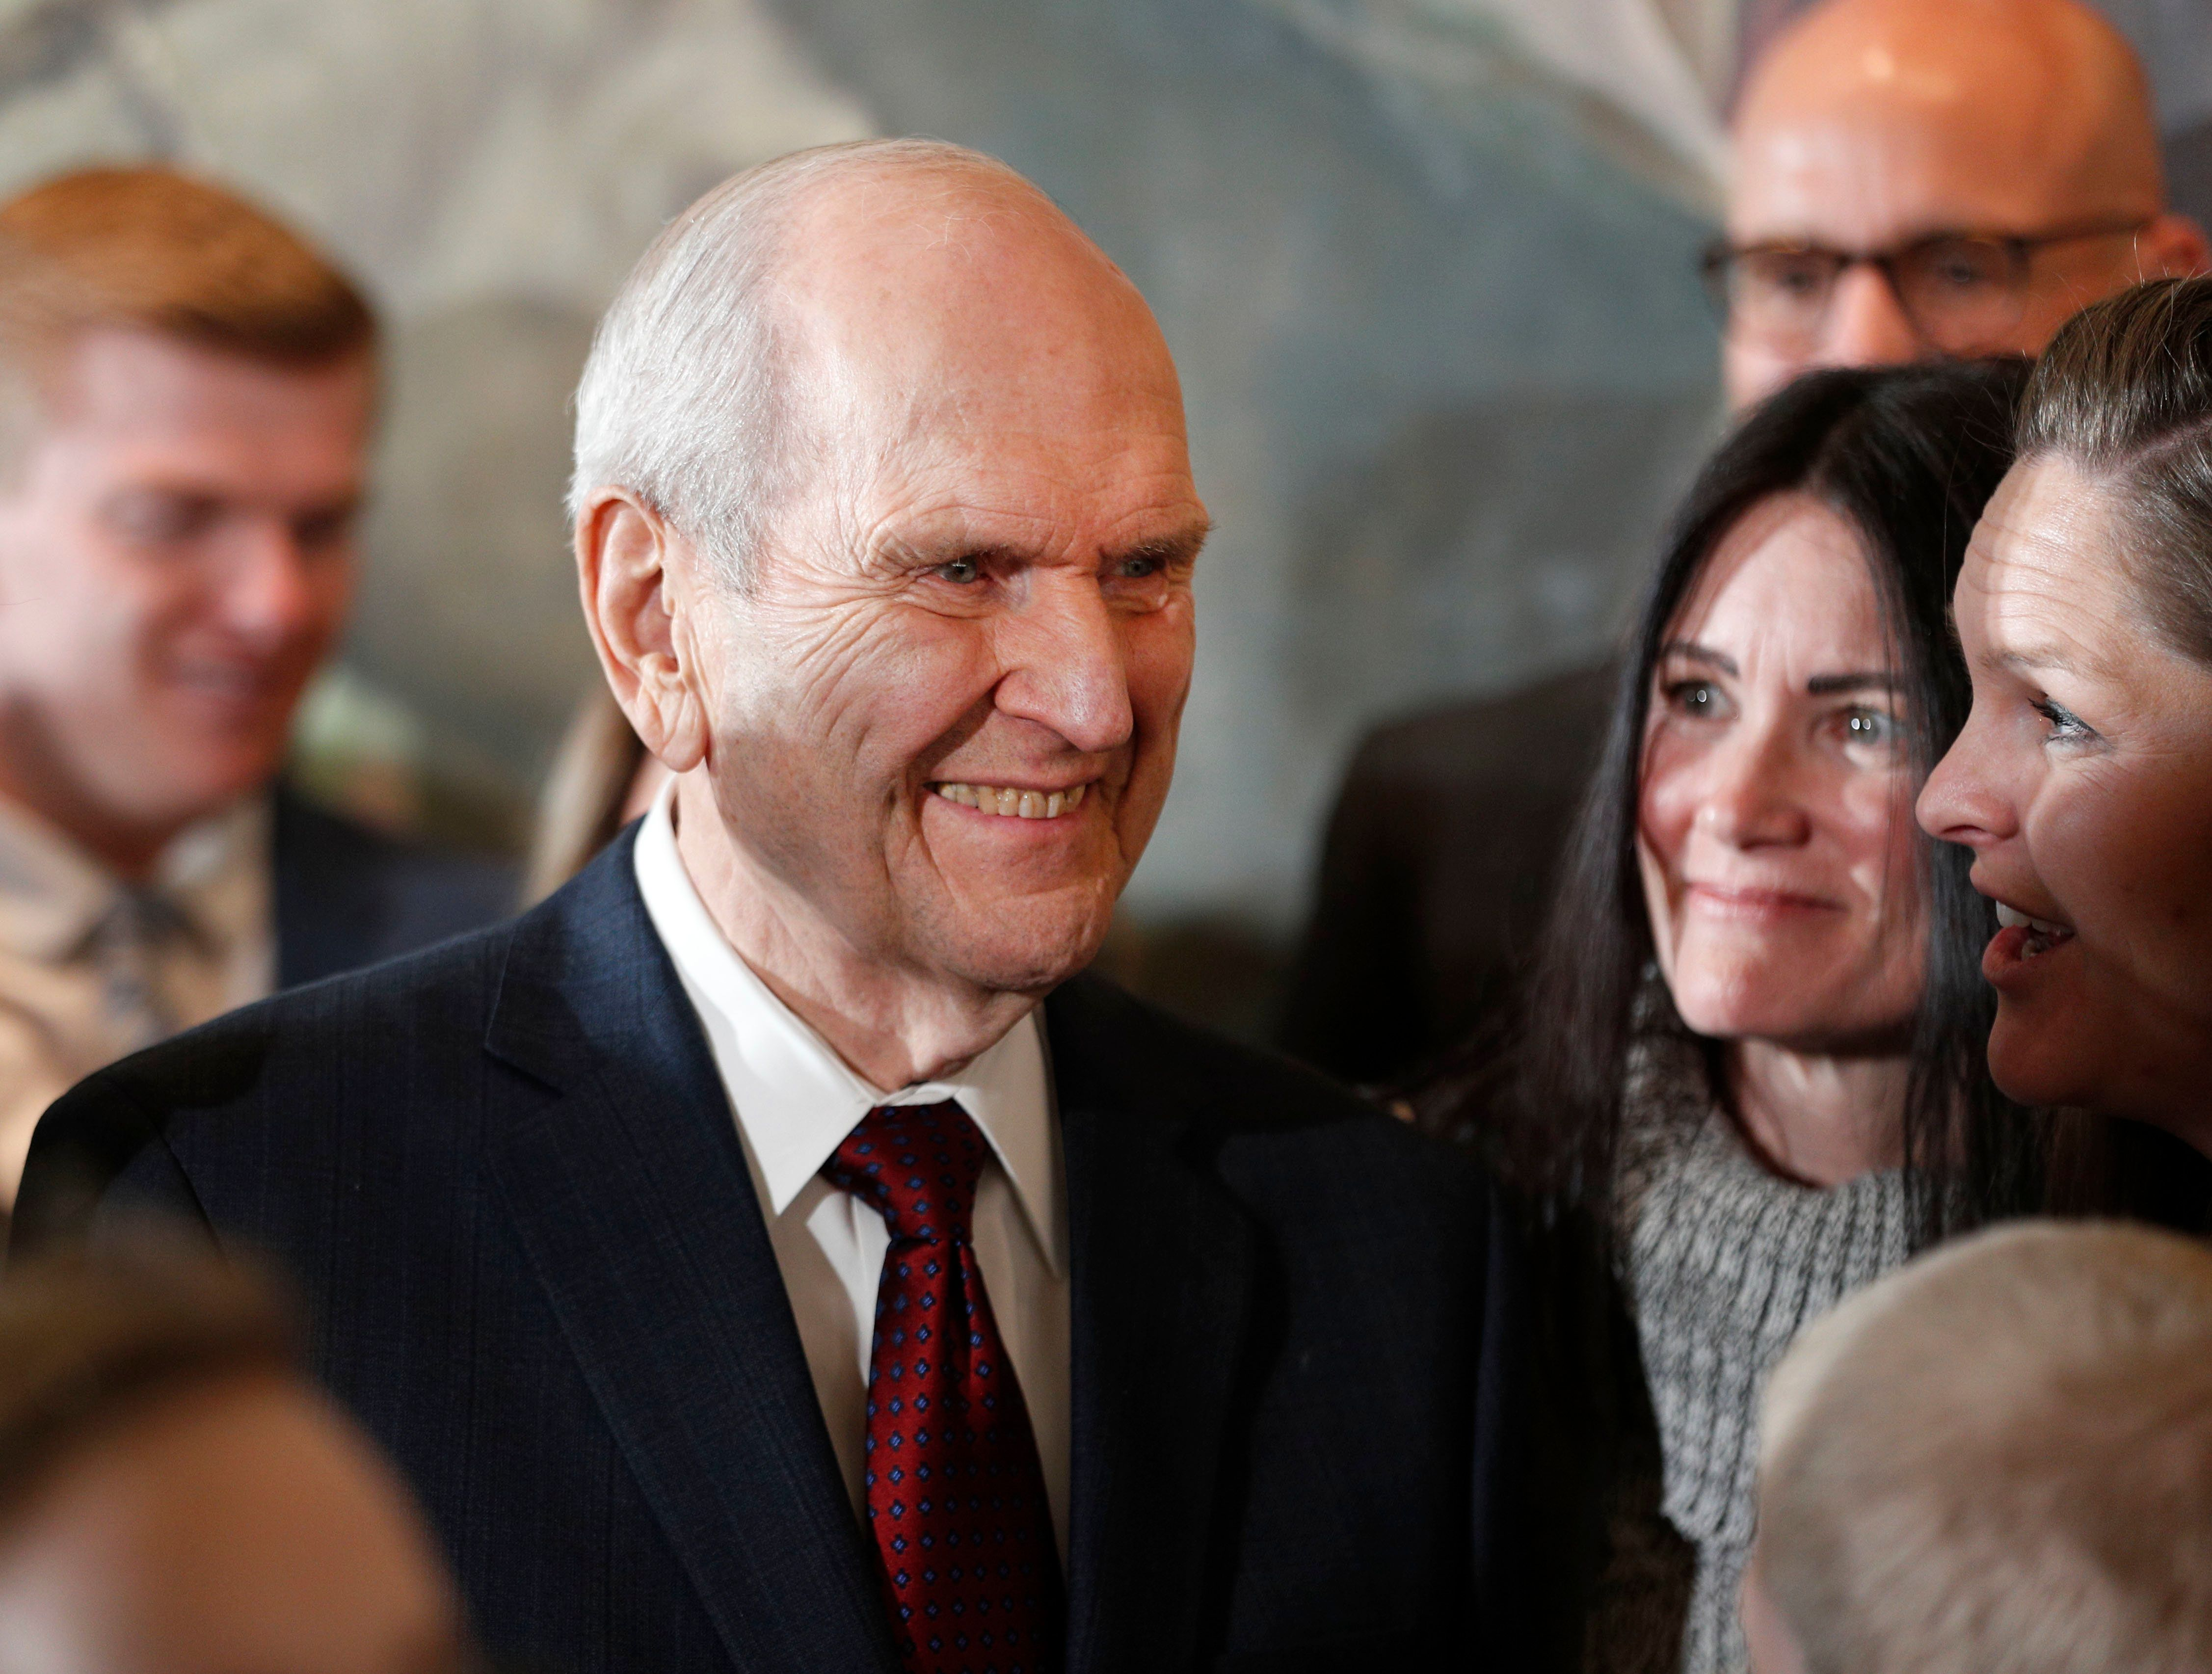 SALT LAKE CITY, UT - JANUARY 16:  President Russell M. Nelson of the Church of Jesus Christ of Latter -Day Saints is greeted by family members after a press conference to announce Nelson was the 17th president of the Mormon Church on January 16, 2017 in Salt Lake City, Utah. Nelson who is 93, replaced Thomas S. Monson as president after his death a couple weeks ago. (Photo by George Frey/Getty Images)